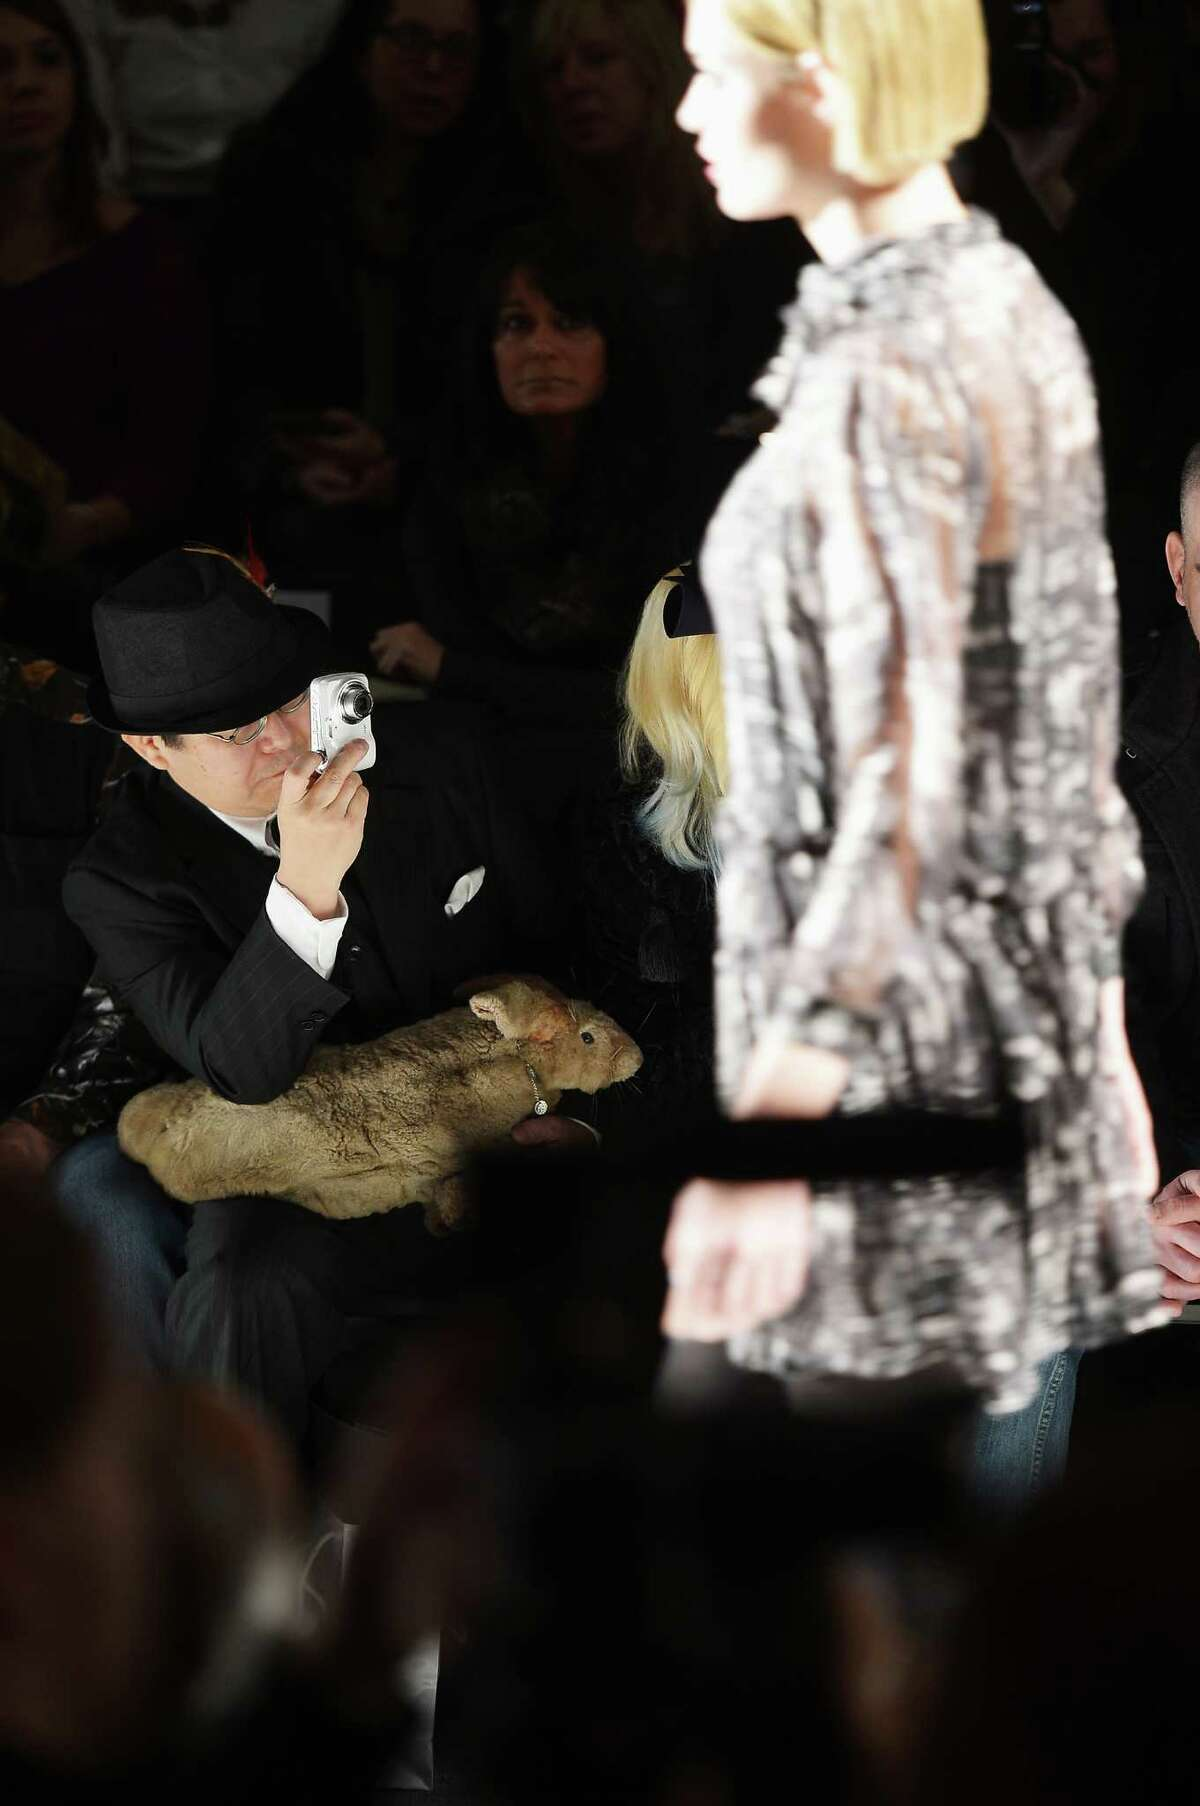 Taxidermist Takeshi Yamada is holding a stuffed rabbit that has been equipped with what appears to be webbed feet, front row at New York Fashion Week.